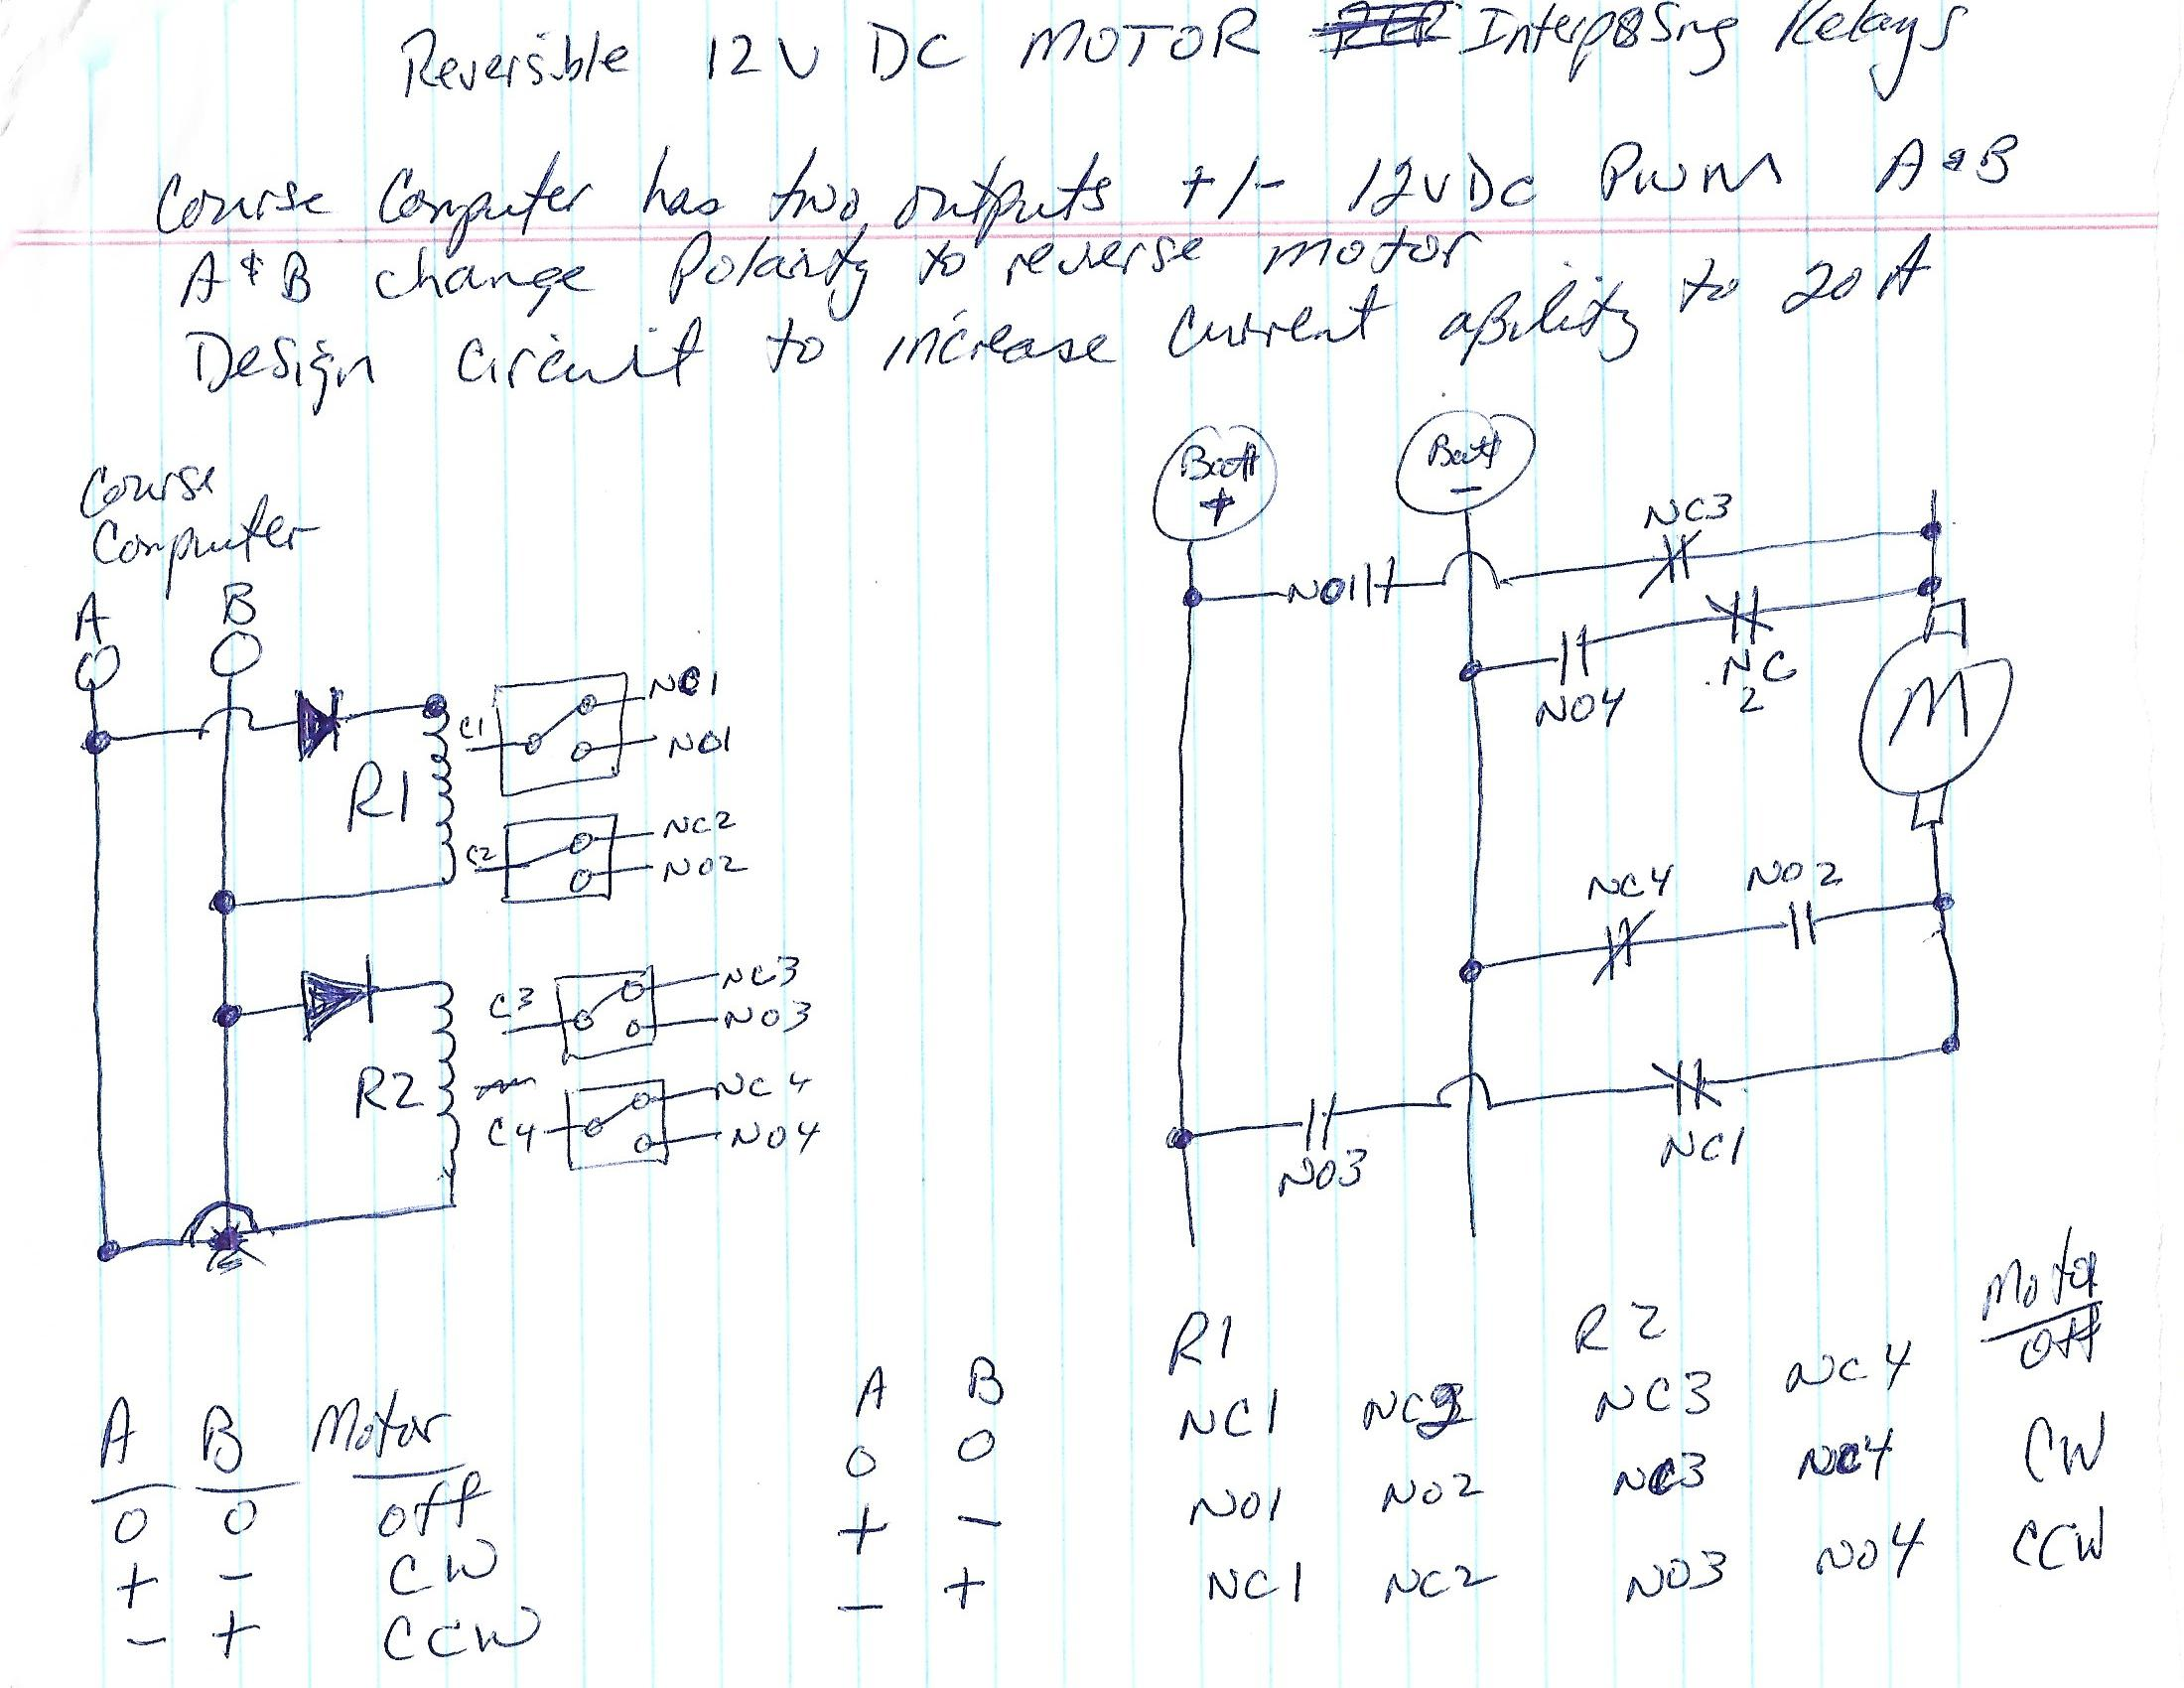 interposing relay panel wiring diagram stem and leaf gcse dpdt build a solid state equivalent of an em autopilot scheme